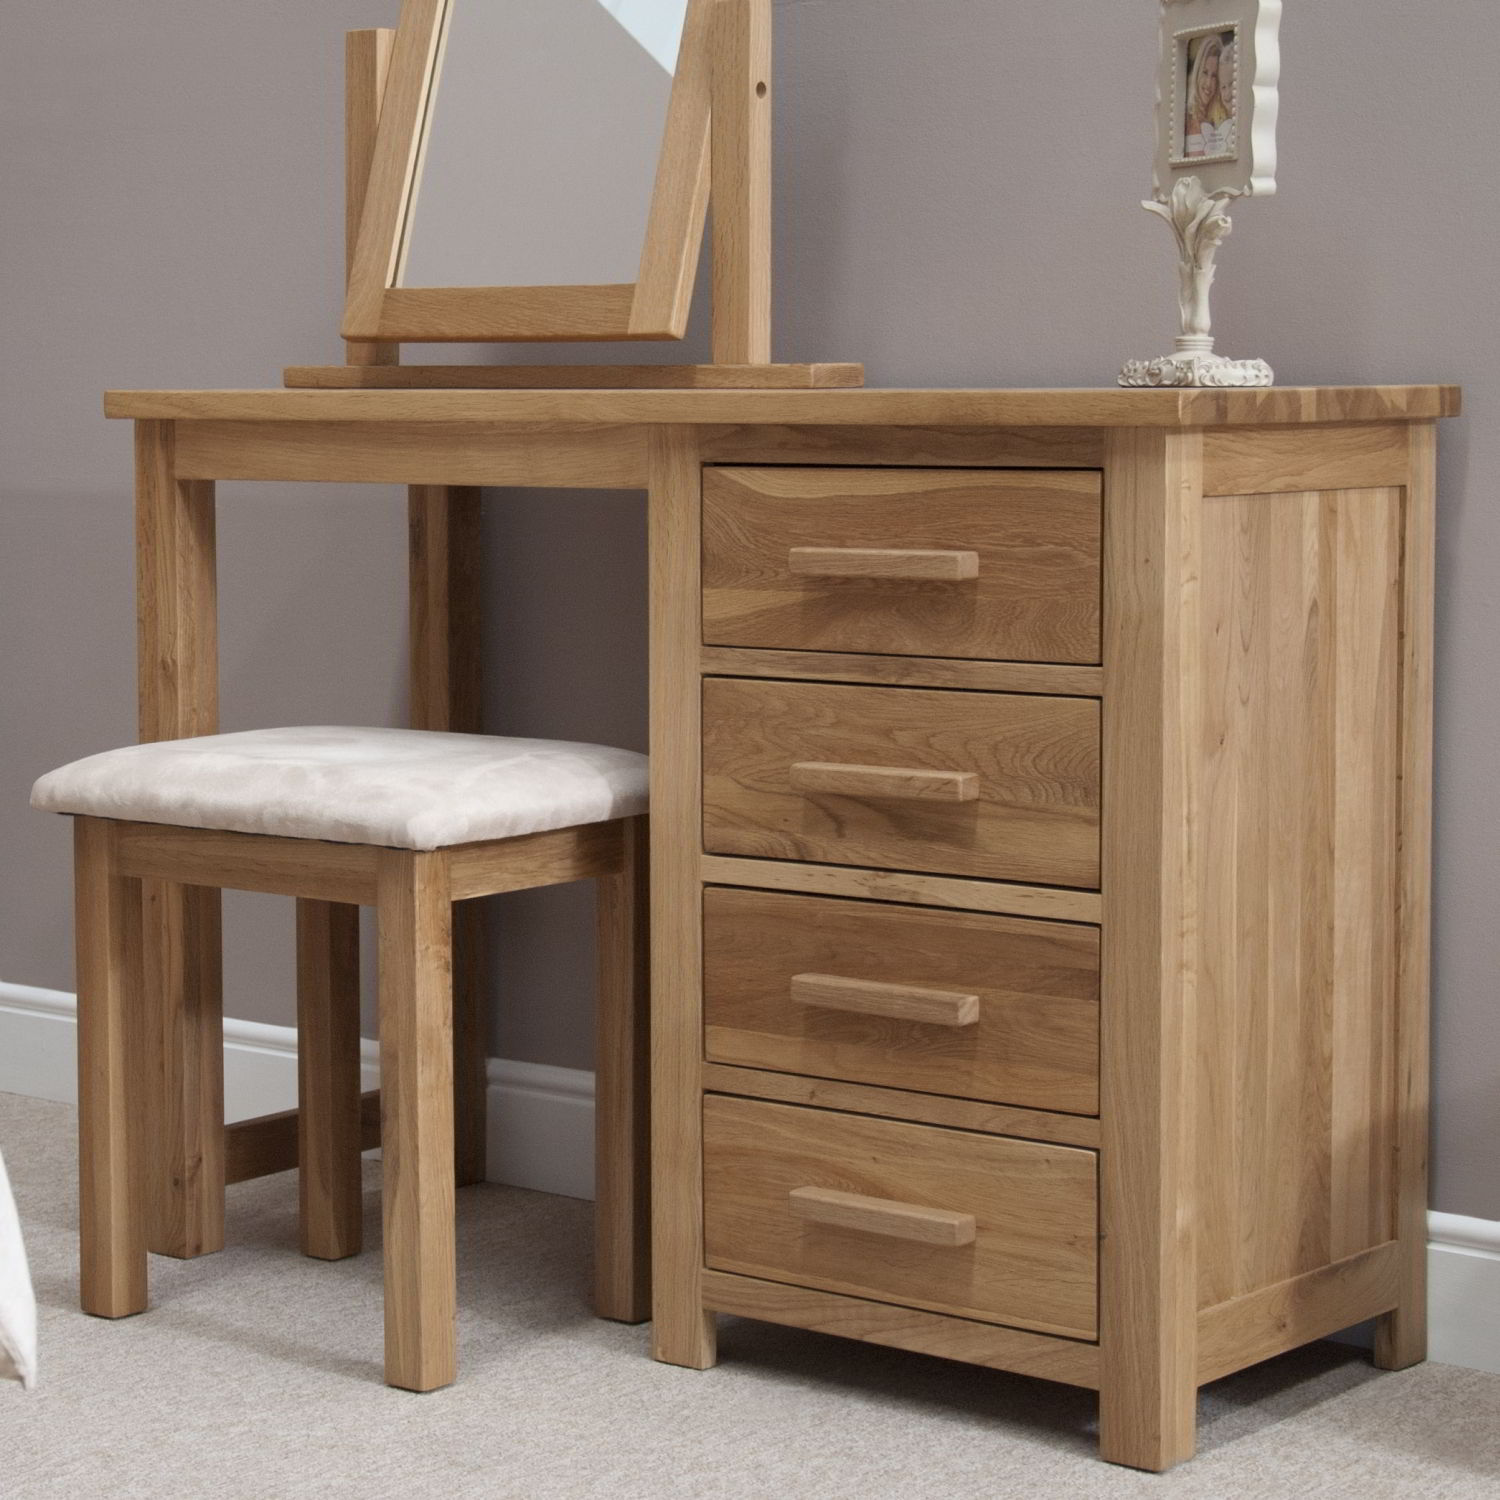 Eton Solid Oak Contemporary Bedroom Furniture Dressing Table With Stool Ebay